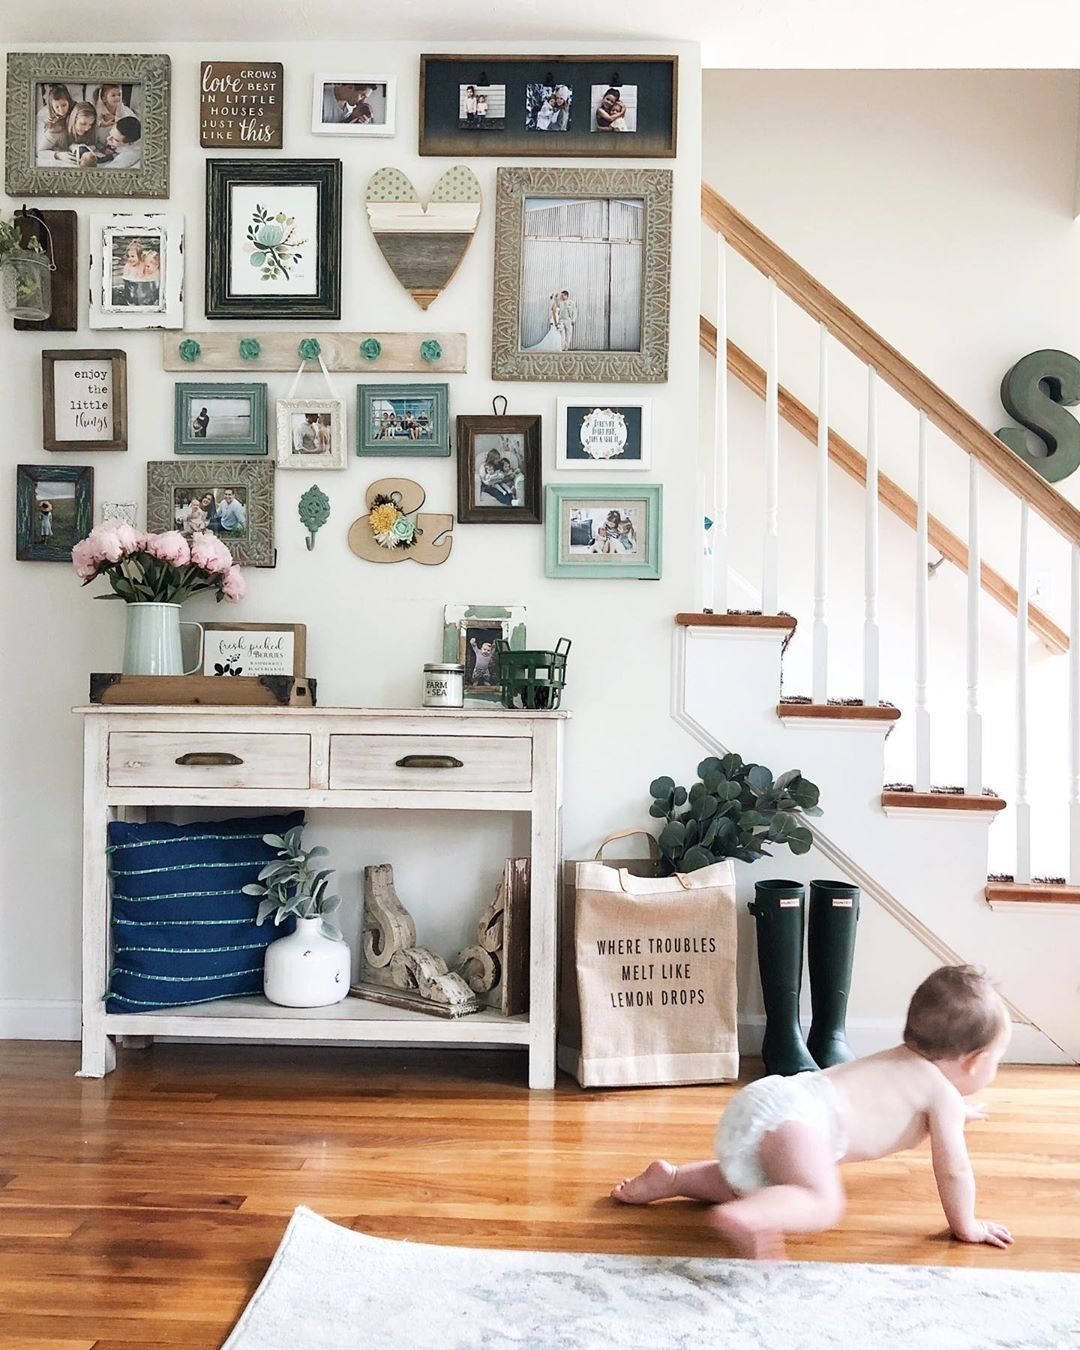 40 Inspiring Photo Collage Ideas And How To Display Abrittonphotography Wall Decor Living Room Picture Collage Wall Home Decor Pictures #photo #collage #in #living #room